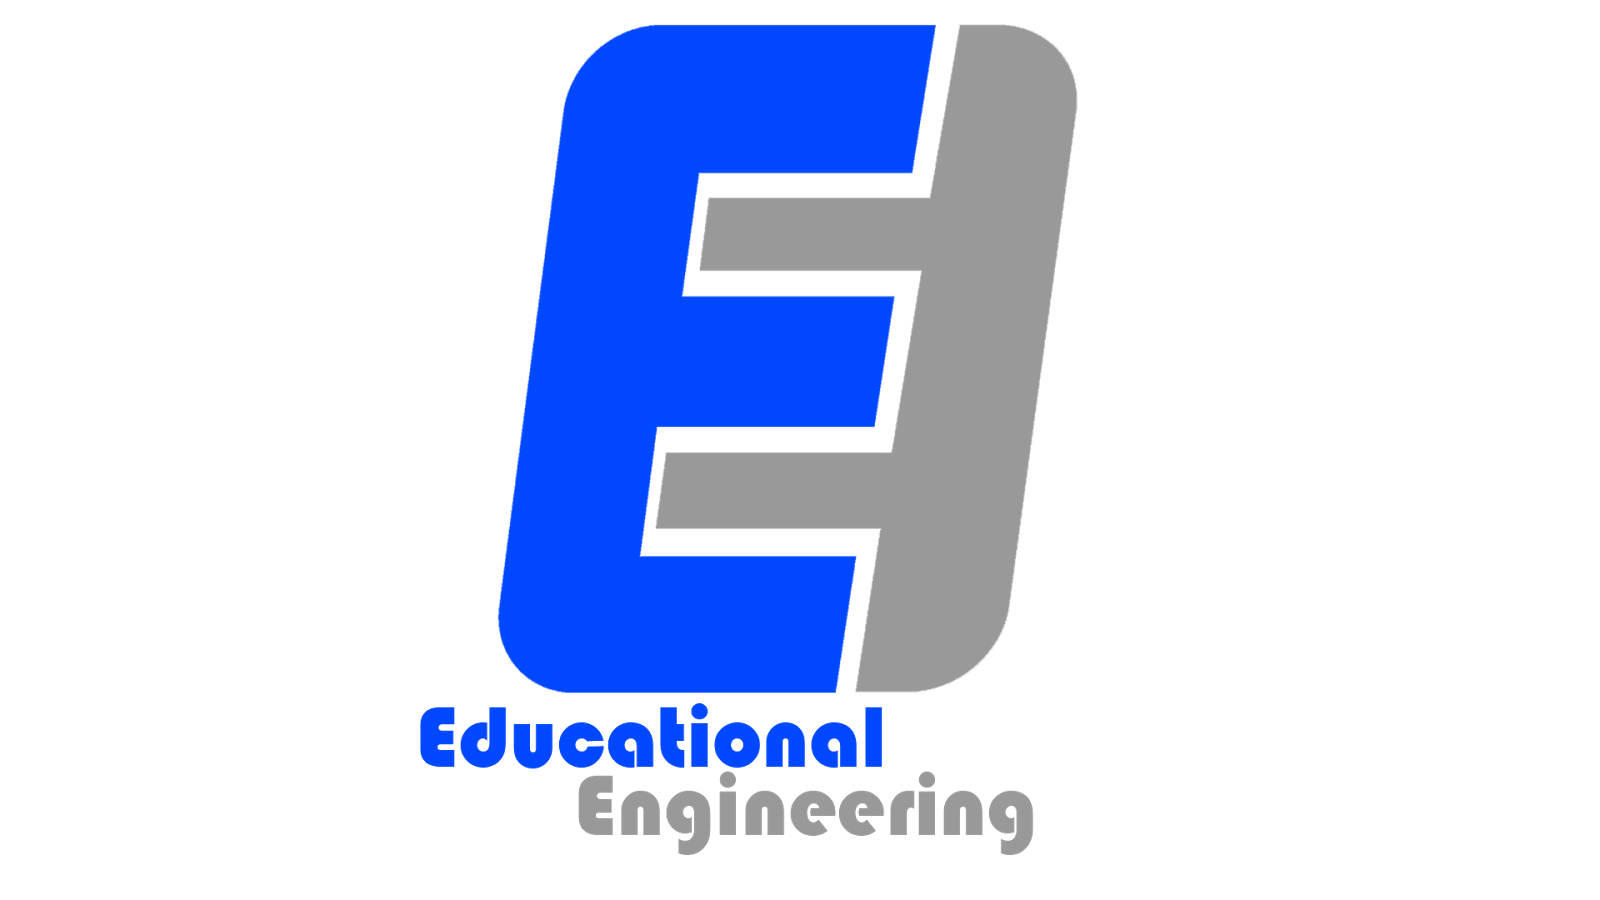 Educational Engineering